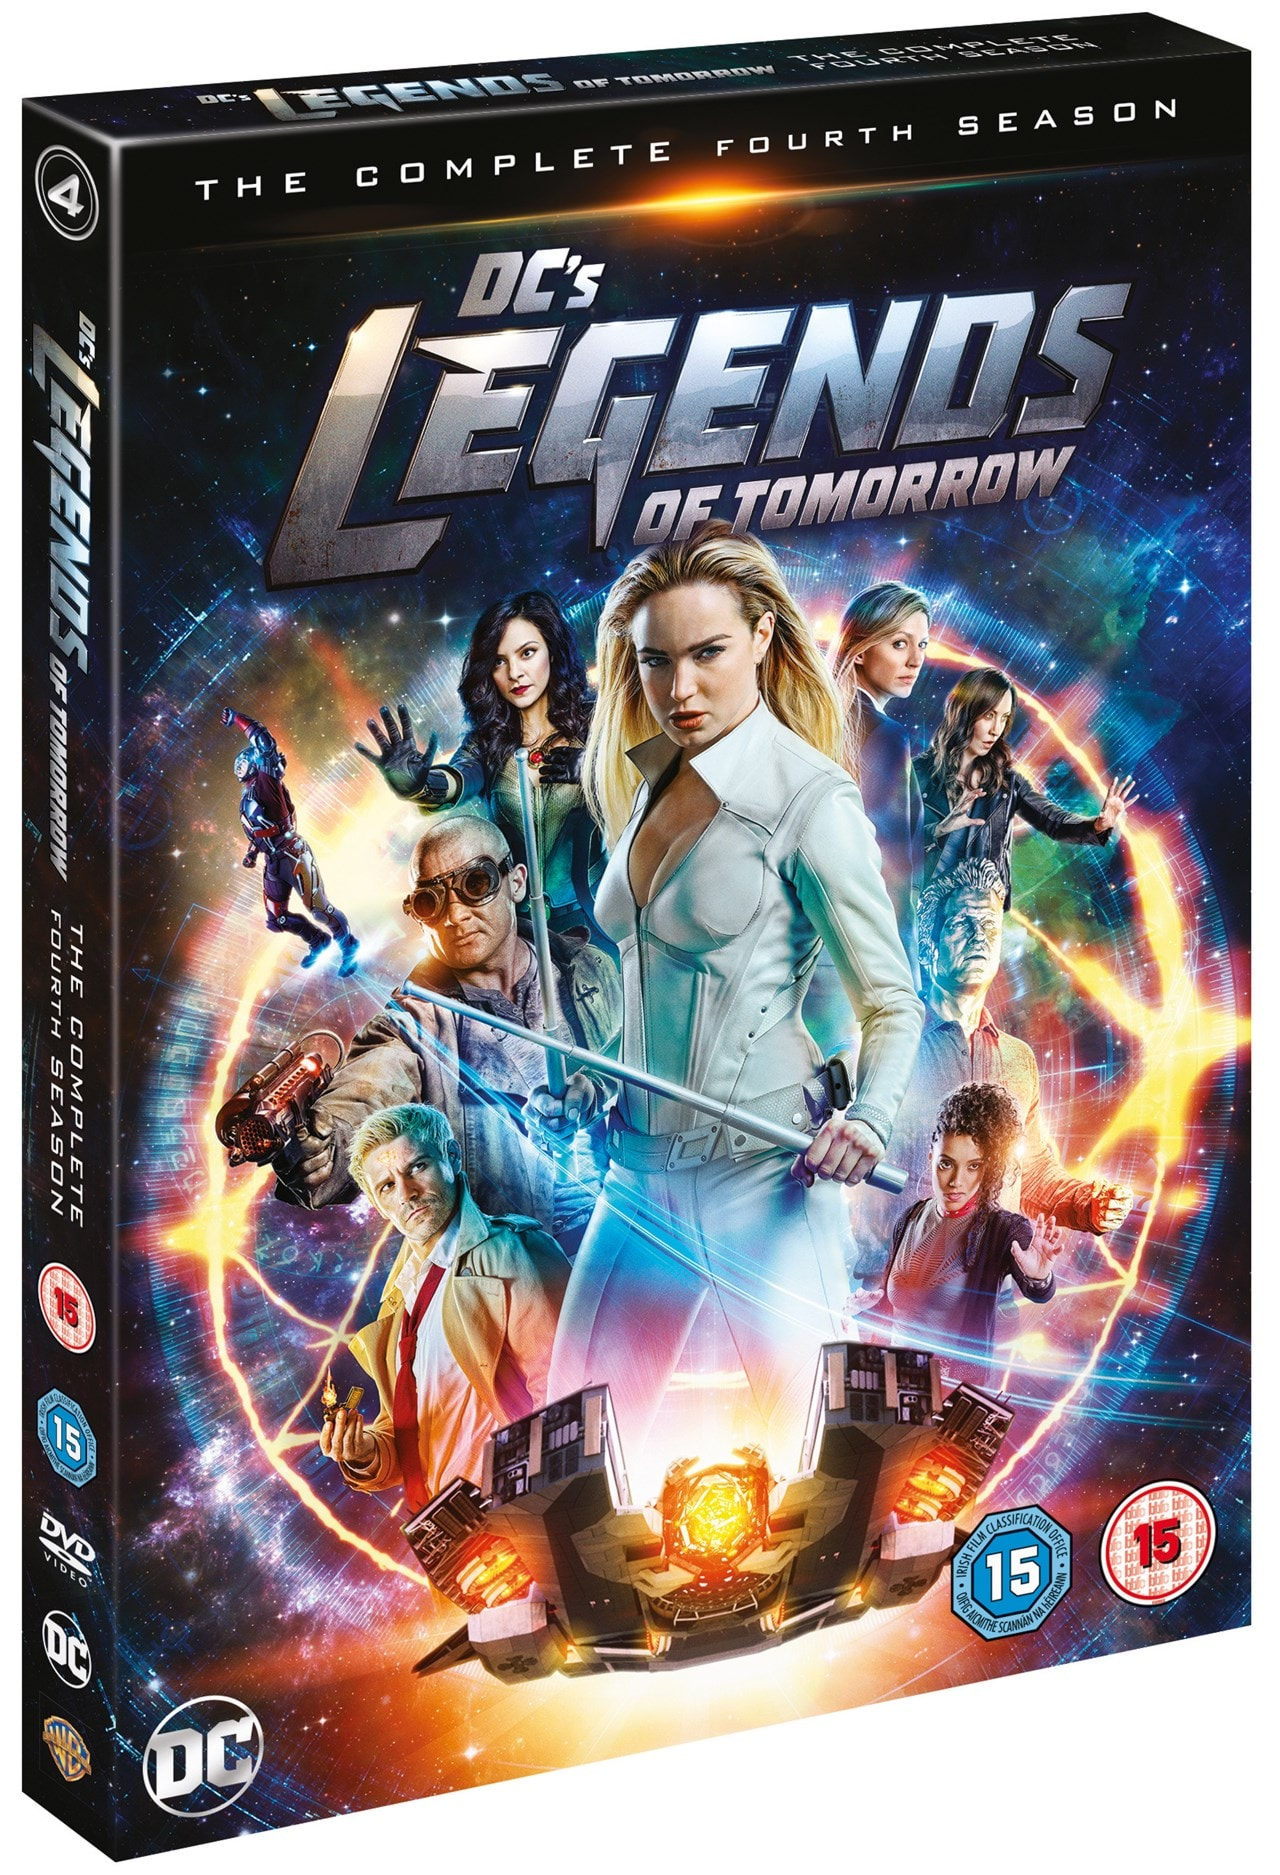 DC's Legends of Tomorrow: The Complete Fourth Season - 2